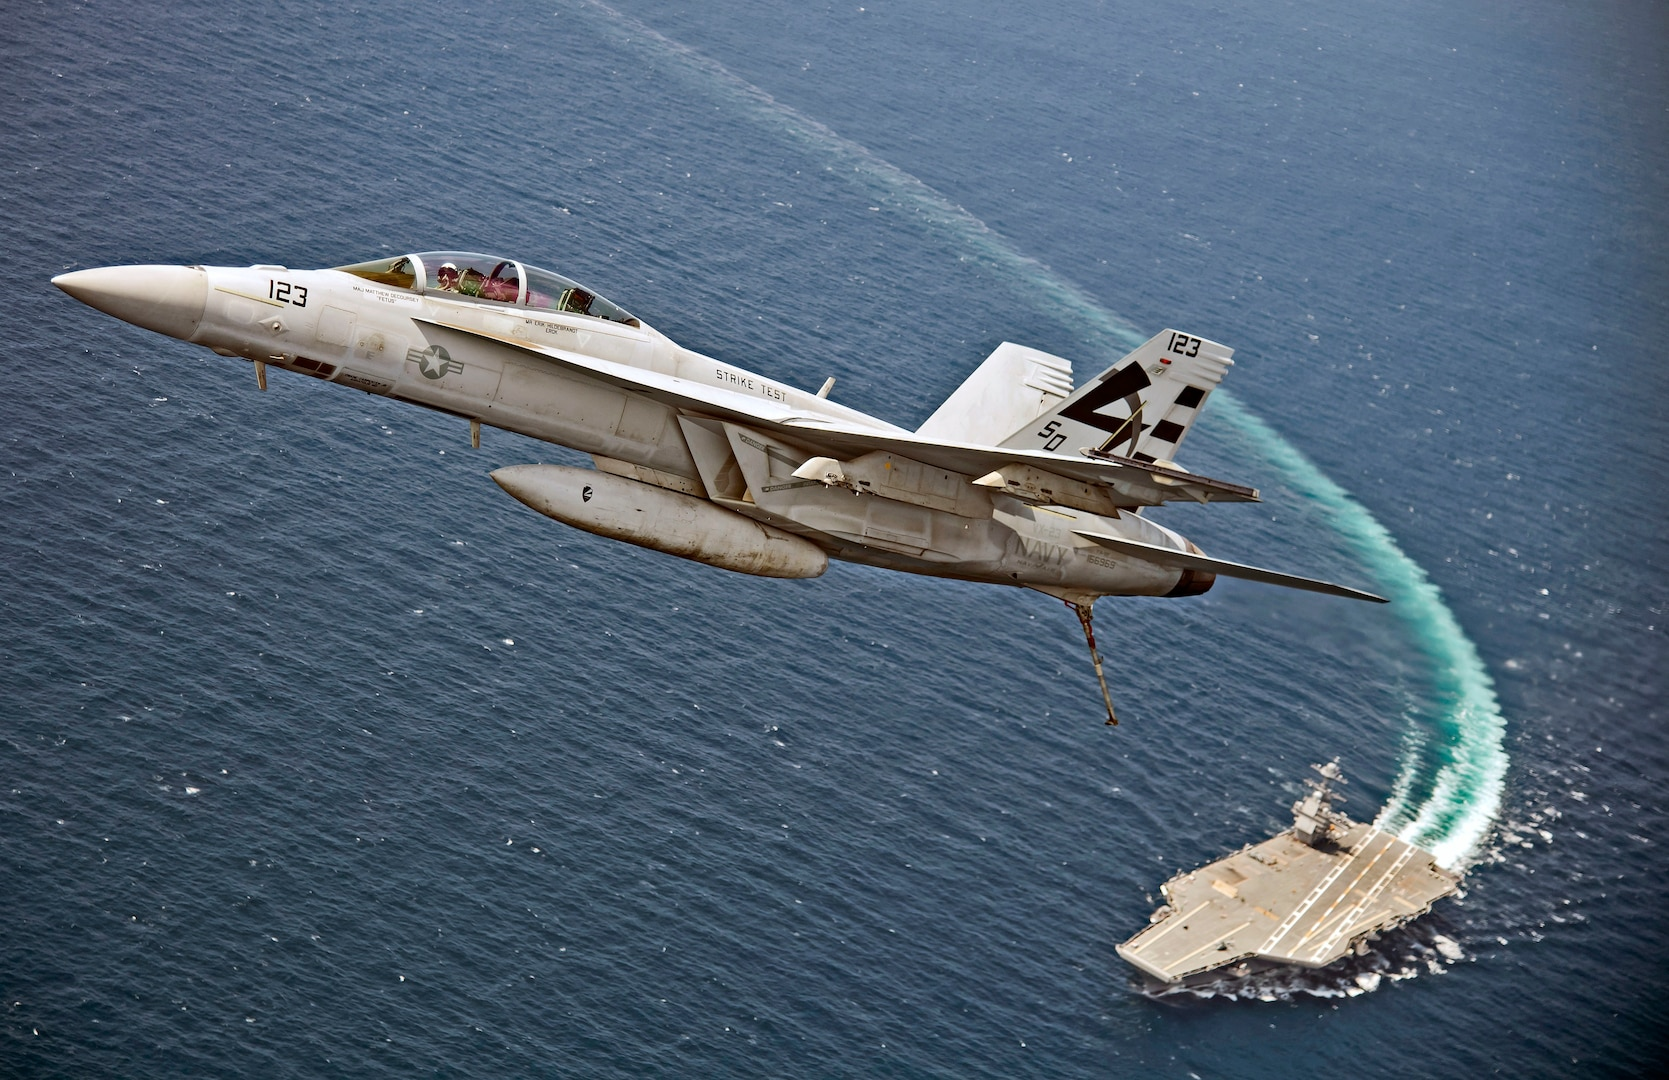 F/A-18F Super Hornet assigned to Air Test and Evaluation Squadron (VX) 23 flies over aircraft carrier USS Gerald R. Ford, July 28, 2017, in Atlantic Ocean (U.S. Navy/Erik Hildebrandt)